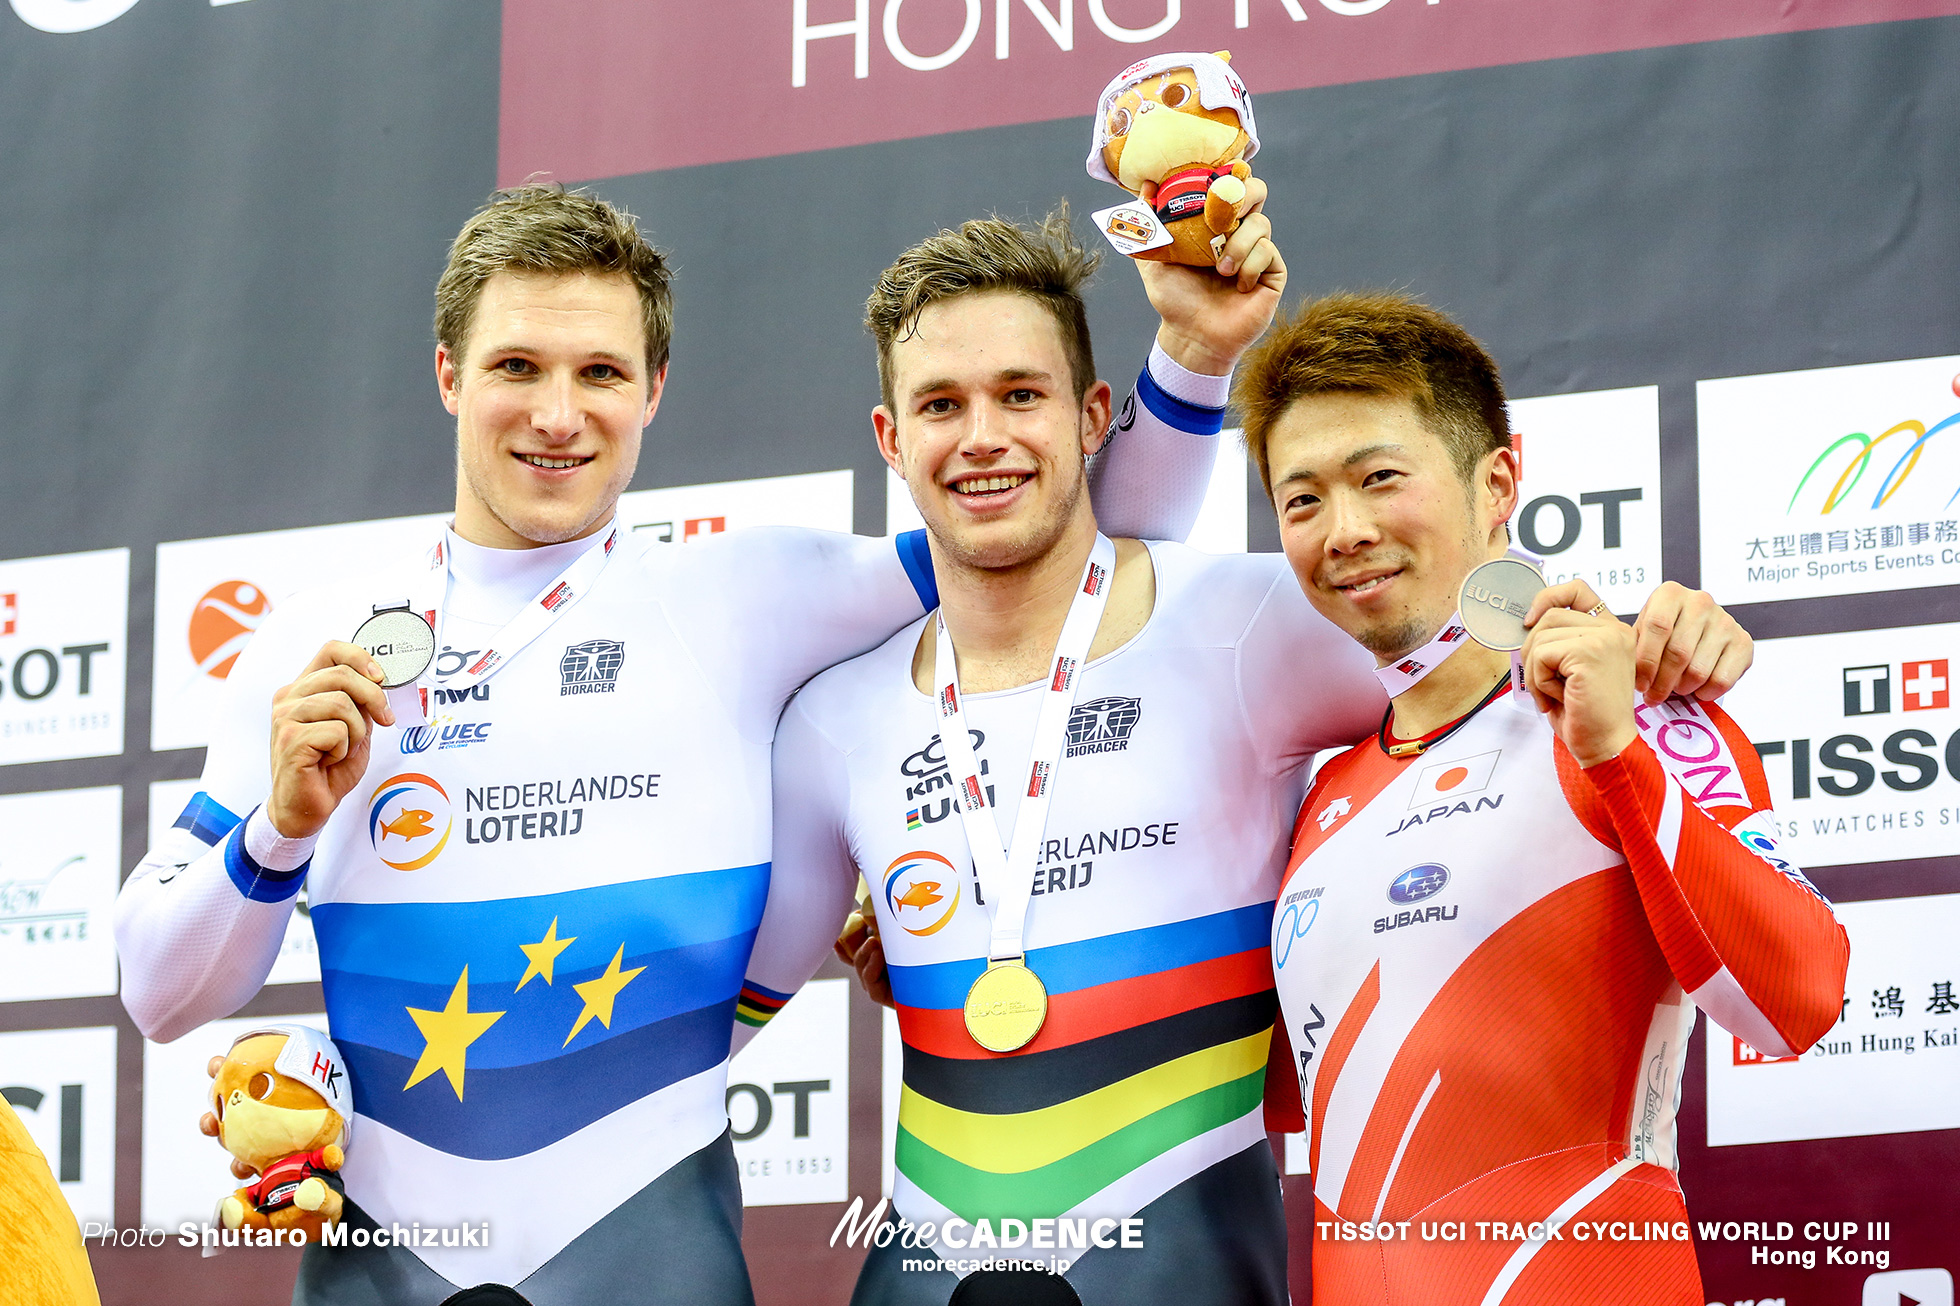 TISSOT UCI TRACK CYCLING WORLD CUP III, Hong Kong